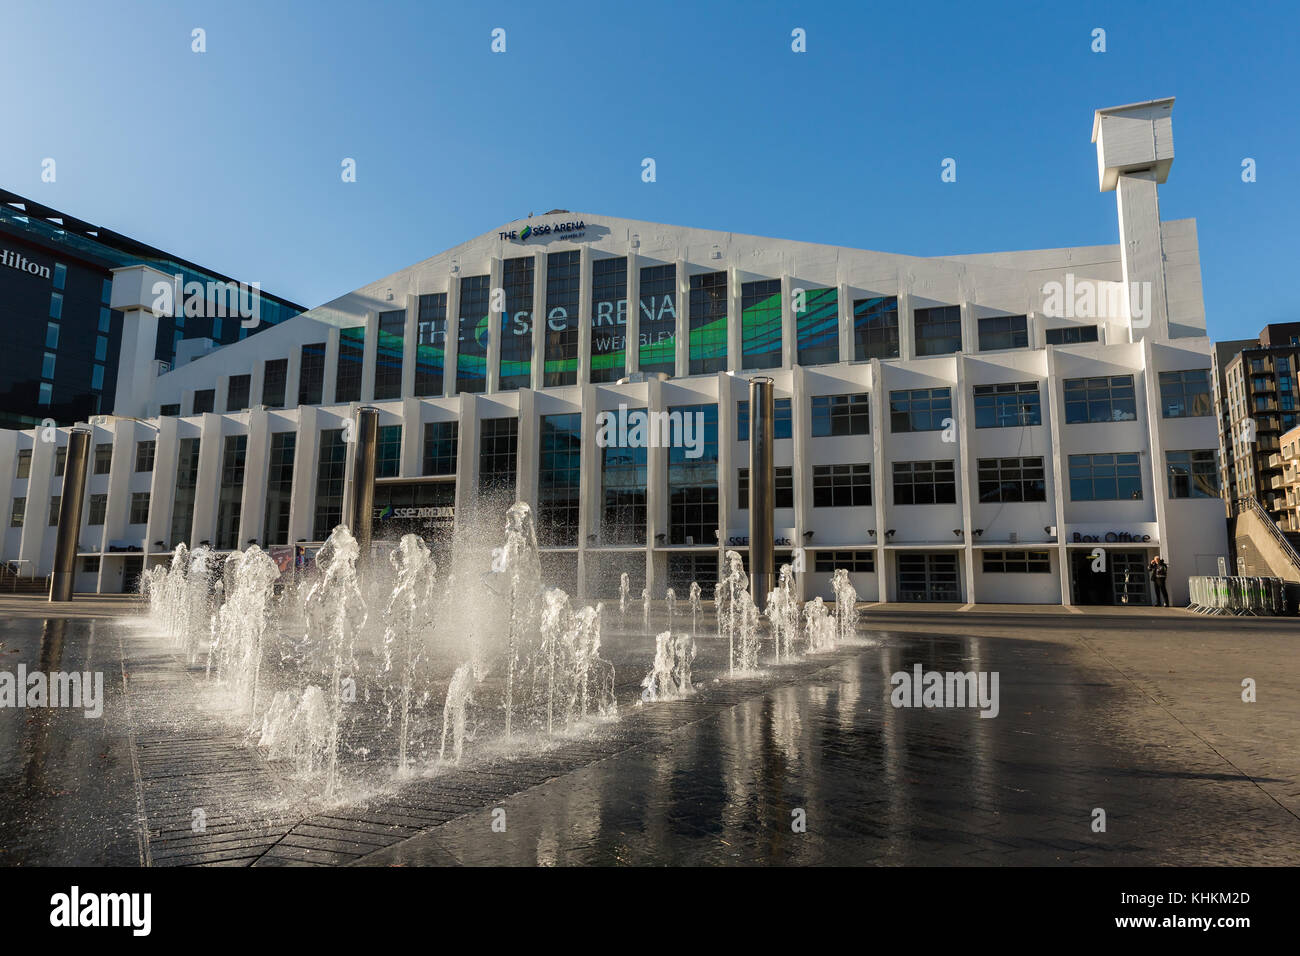 SSE Arena (formerly known as Wembley Arena) Wembley Park, Brent, Middx, UK - Stock Image